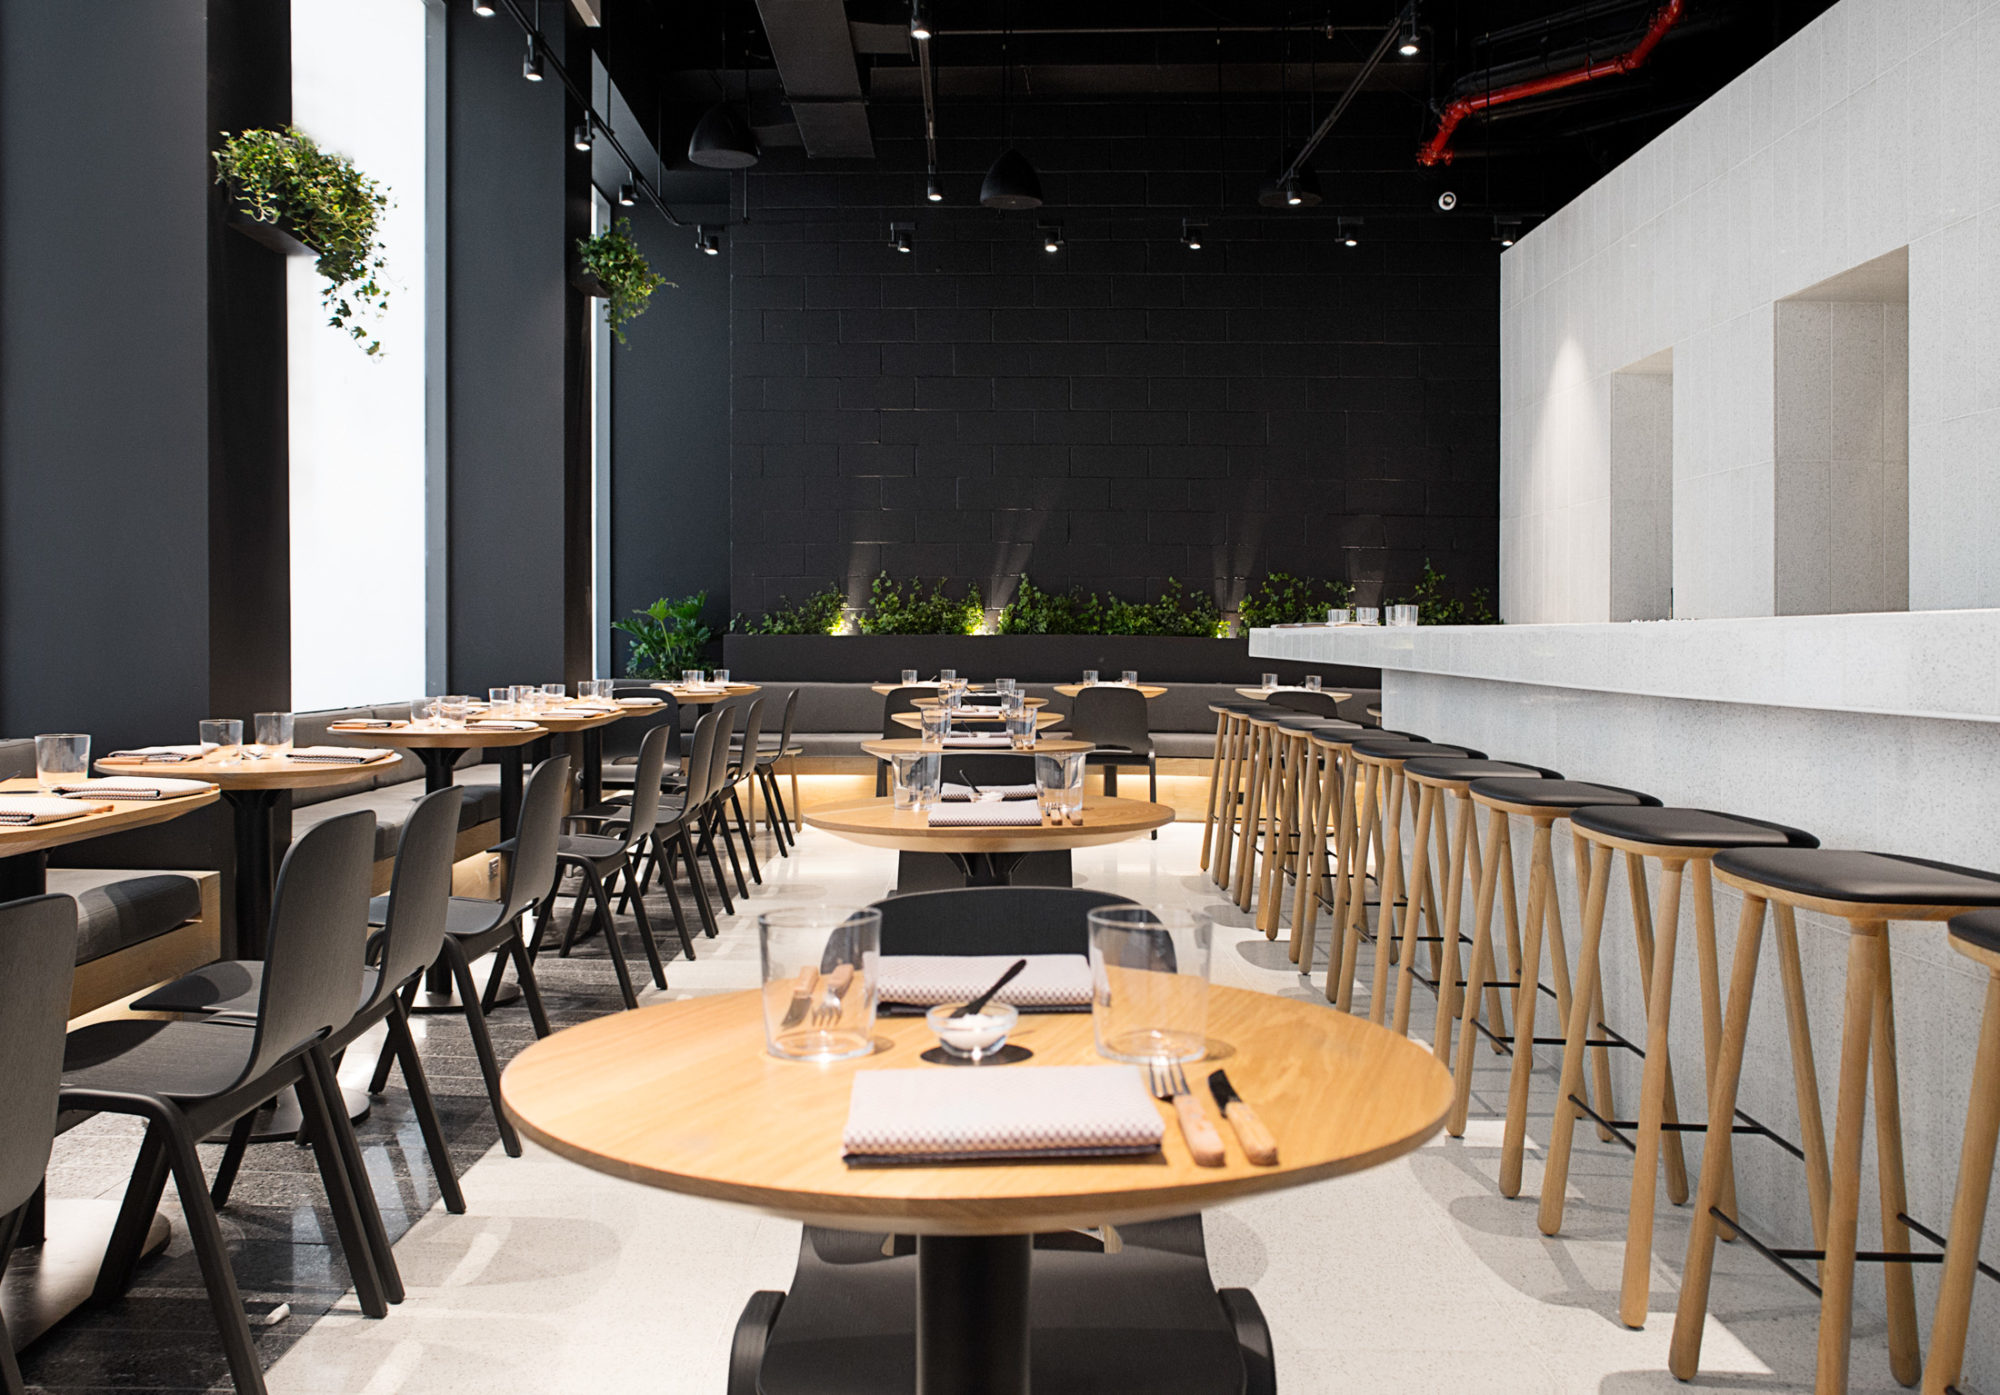 Mexico S Most Famous Chef Opens An All Day Cafe In New York Surface